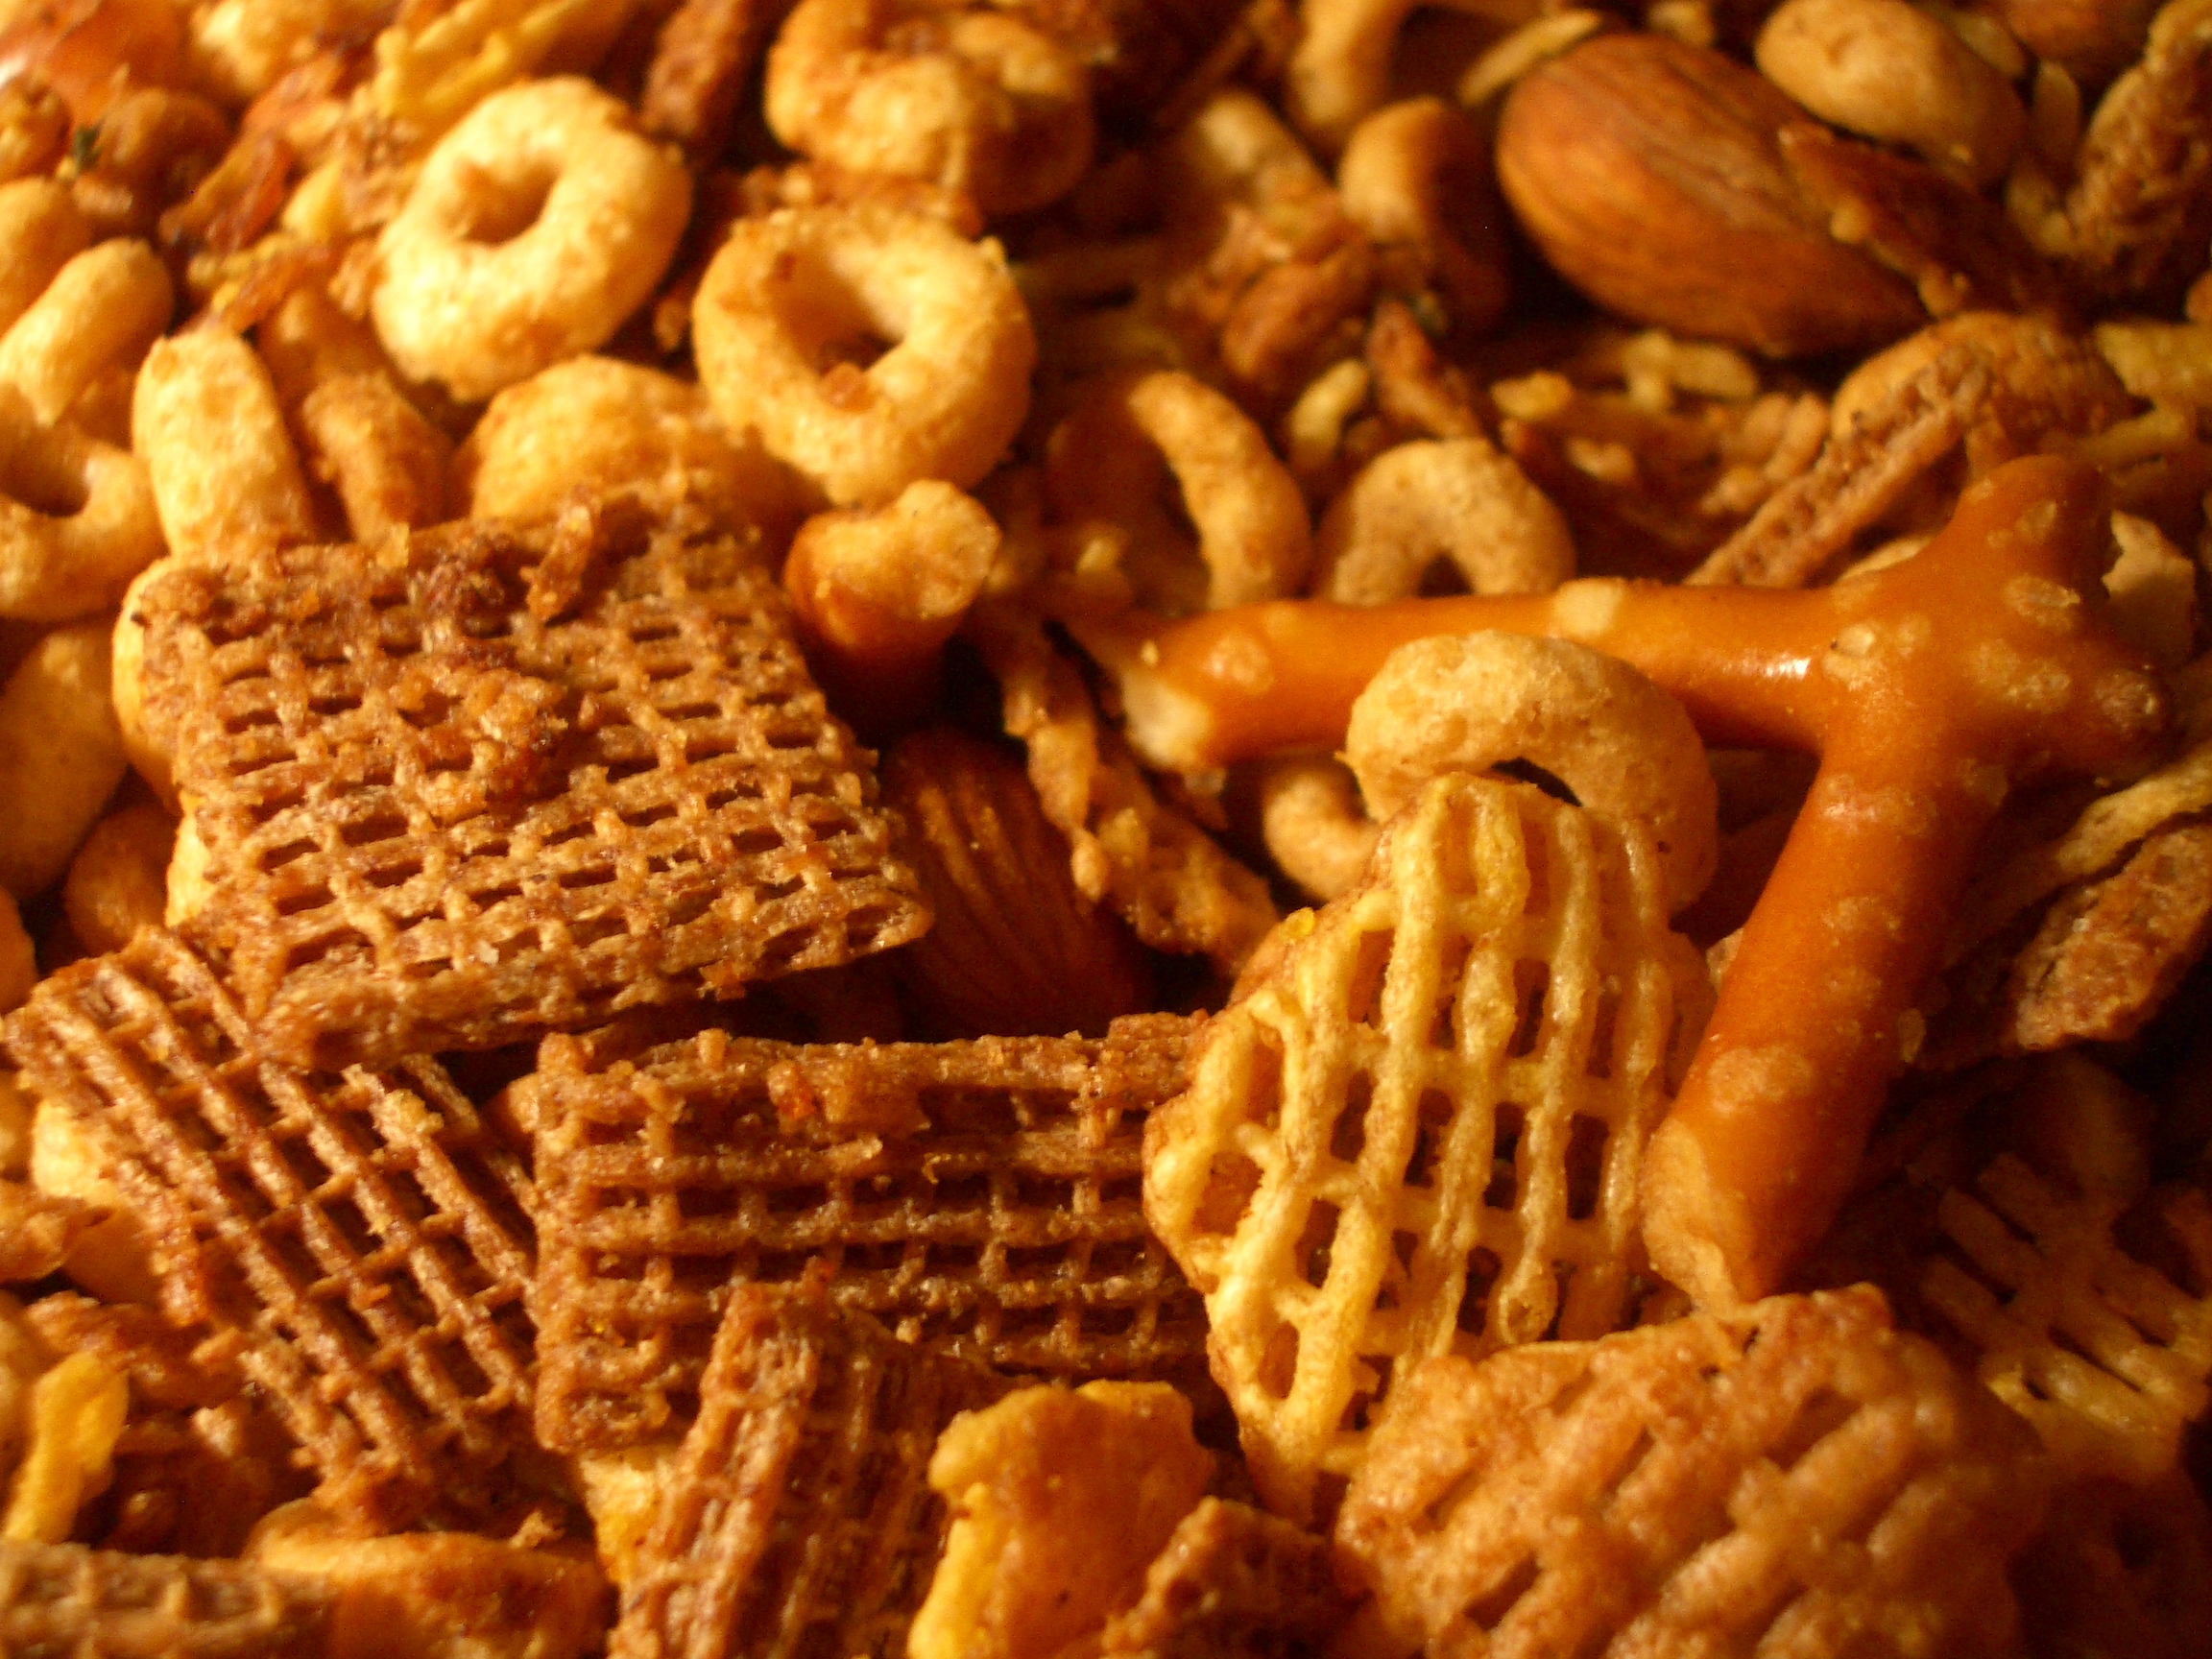 File:Chex Mix.jpg - Wikipedia, the free encyclopedia